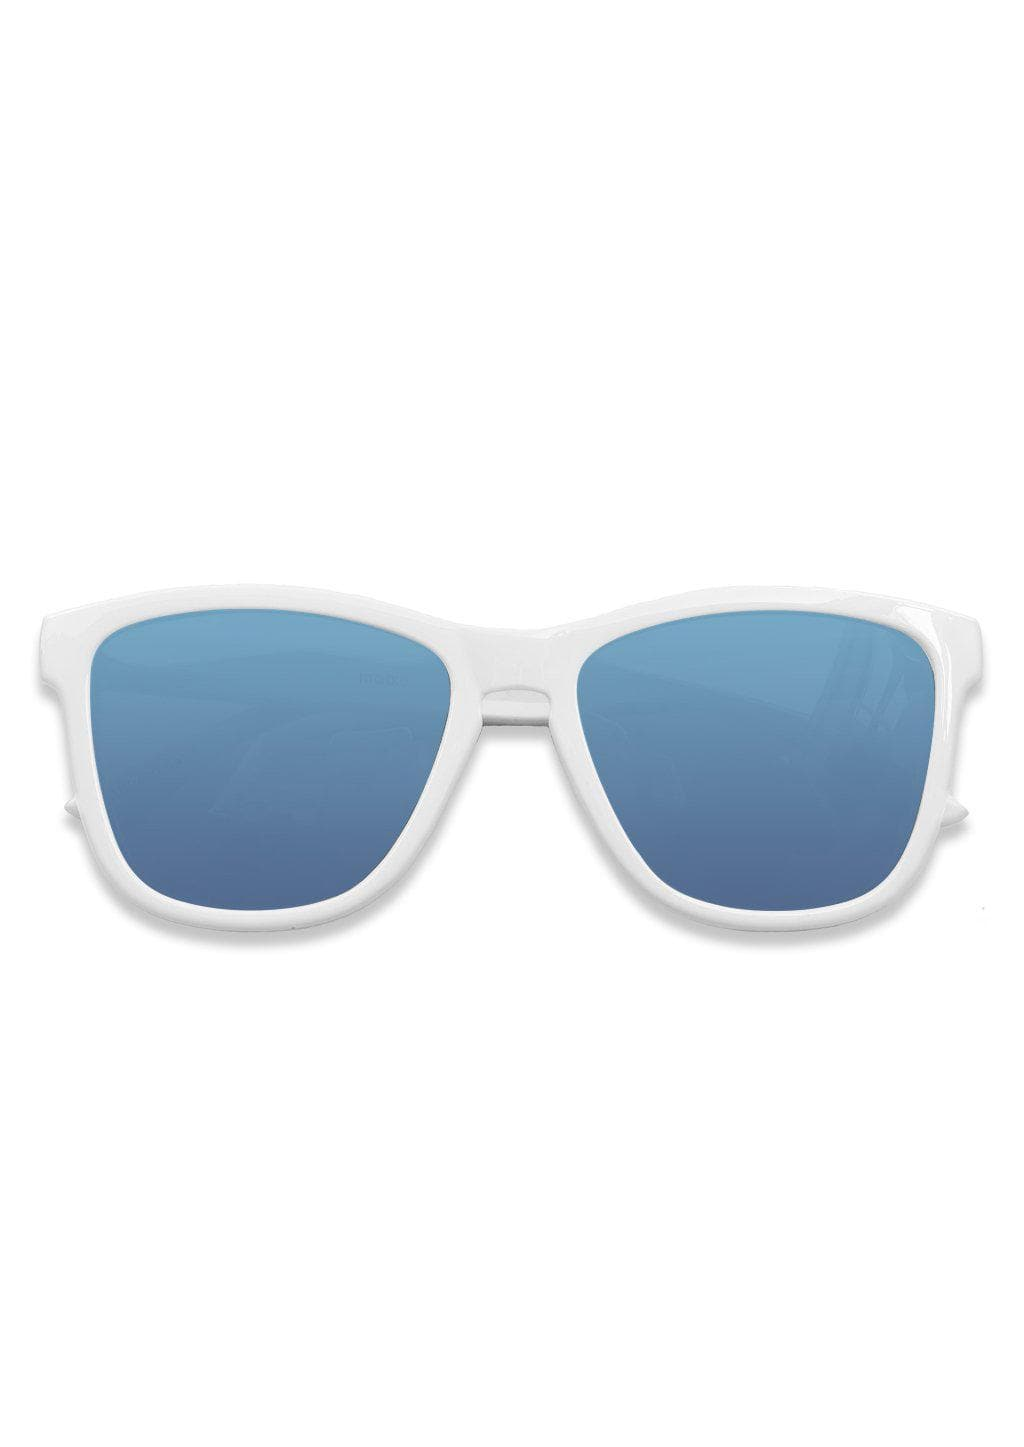 Our Mood V2 is an improved version of our last wayfarers. Plastic body for great quality and durabilty. This is Husky with white frame and blue lenses. From the front.